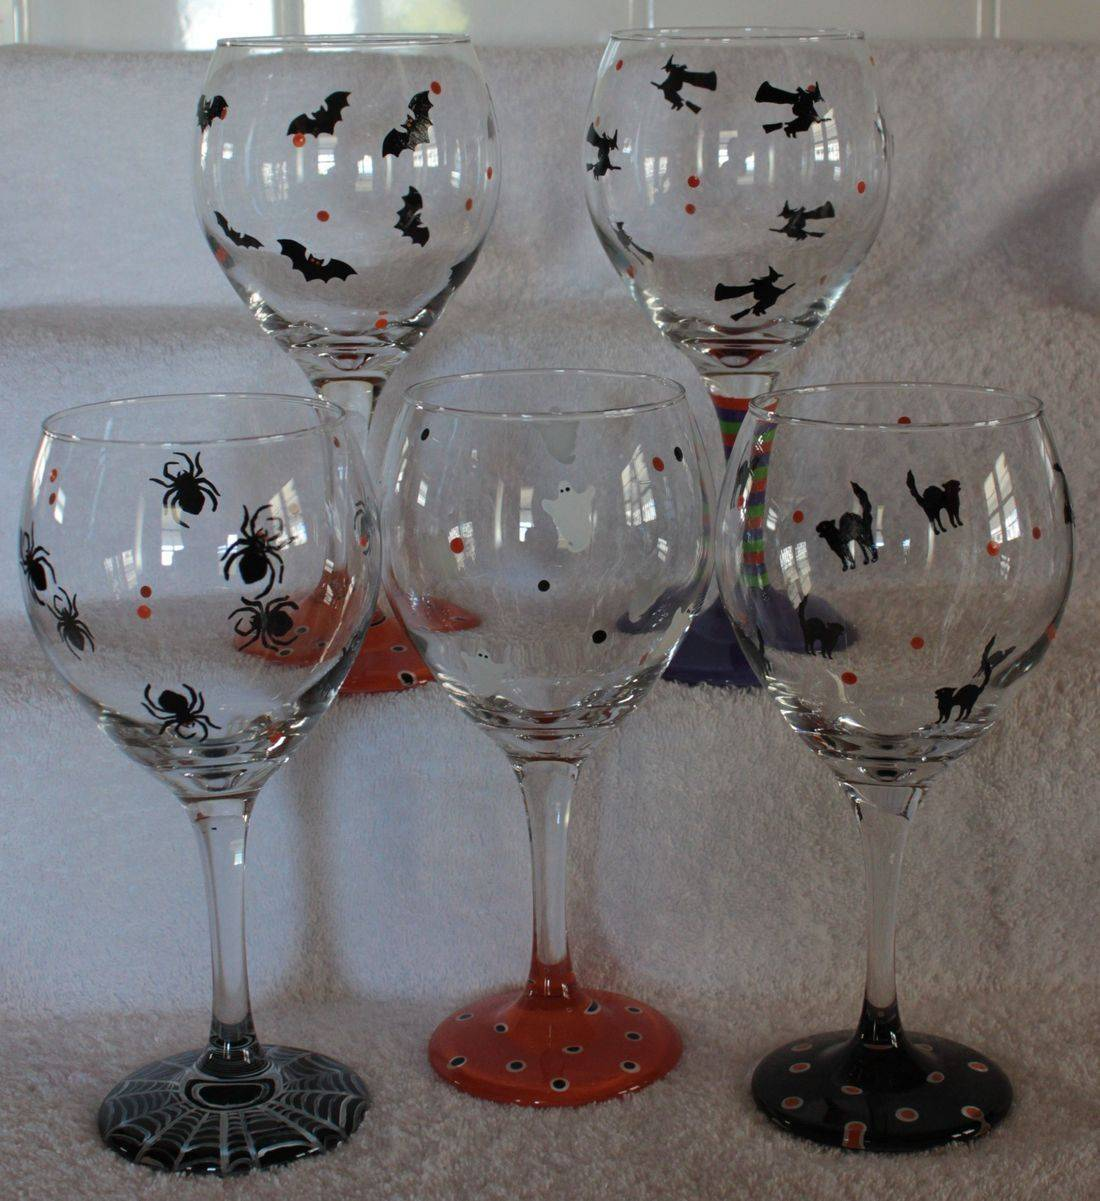 Halloween wine glass, bat wine glass, cat wine glass, spider wine glass, witch wine glass, ghost wine glass